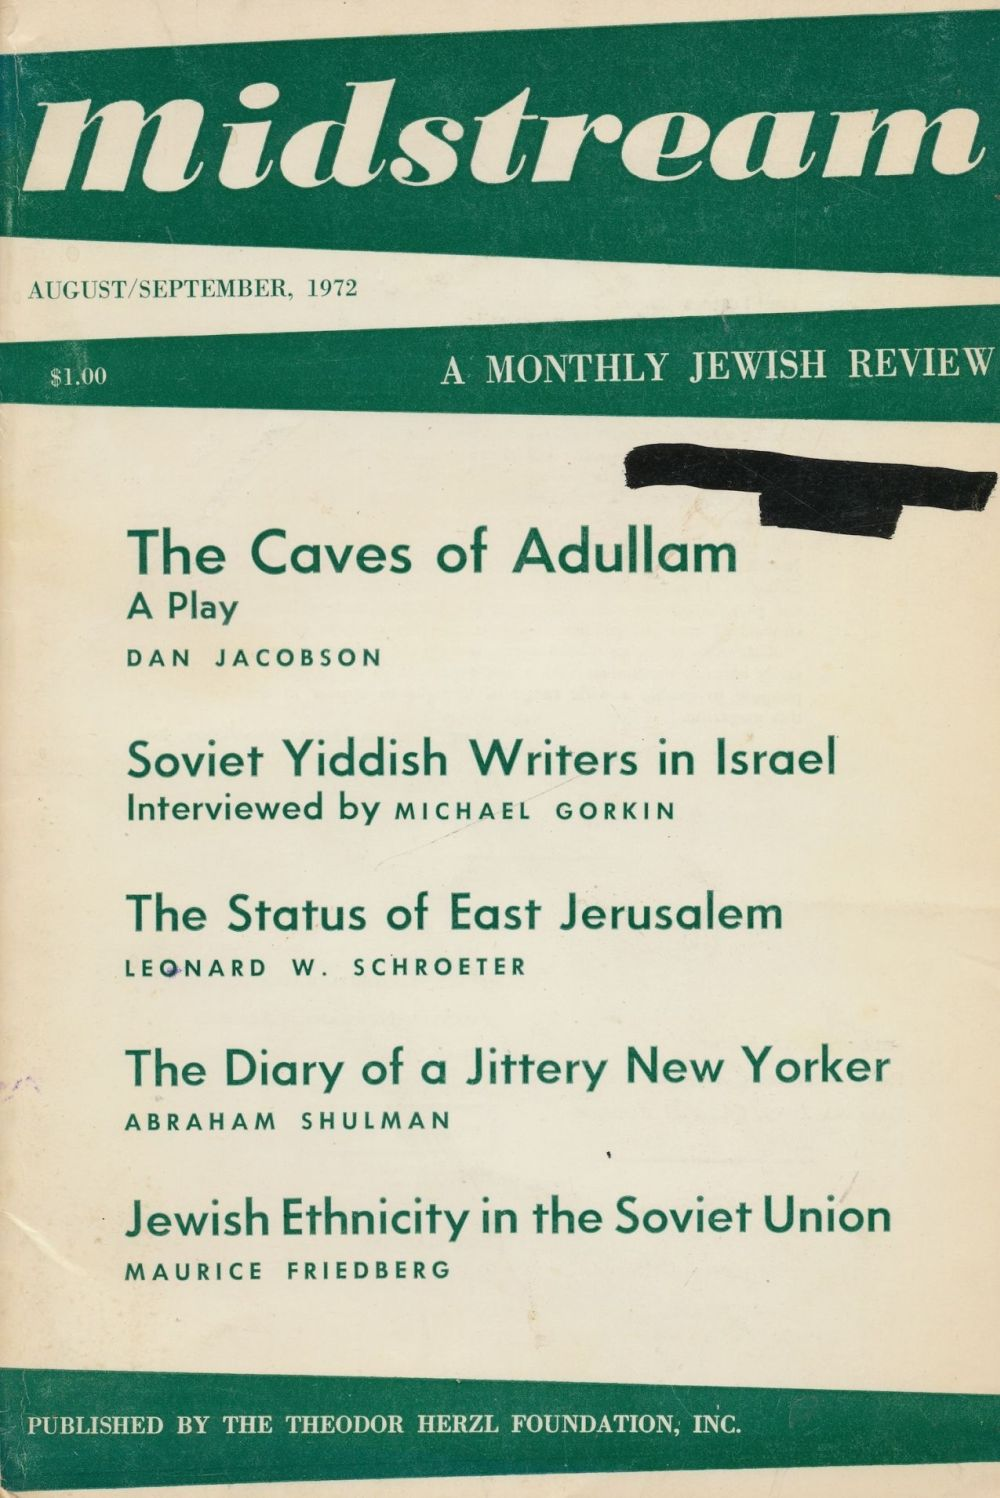 Image for Midstream: a Monthly Jewish Review - August-September 1972